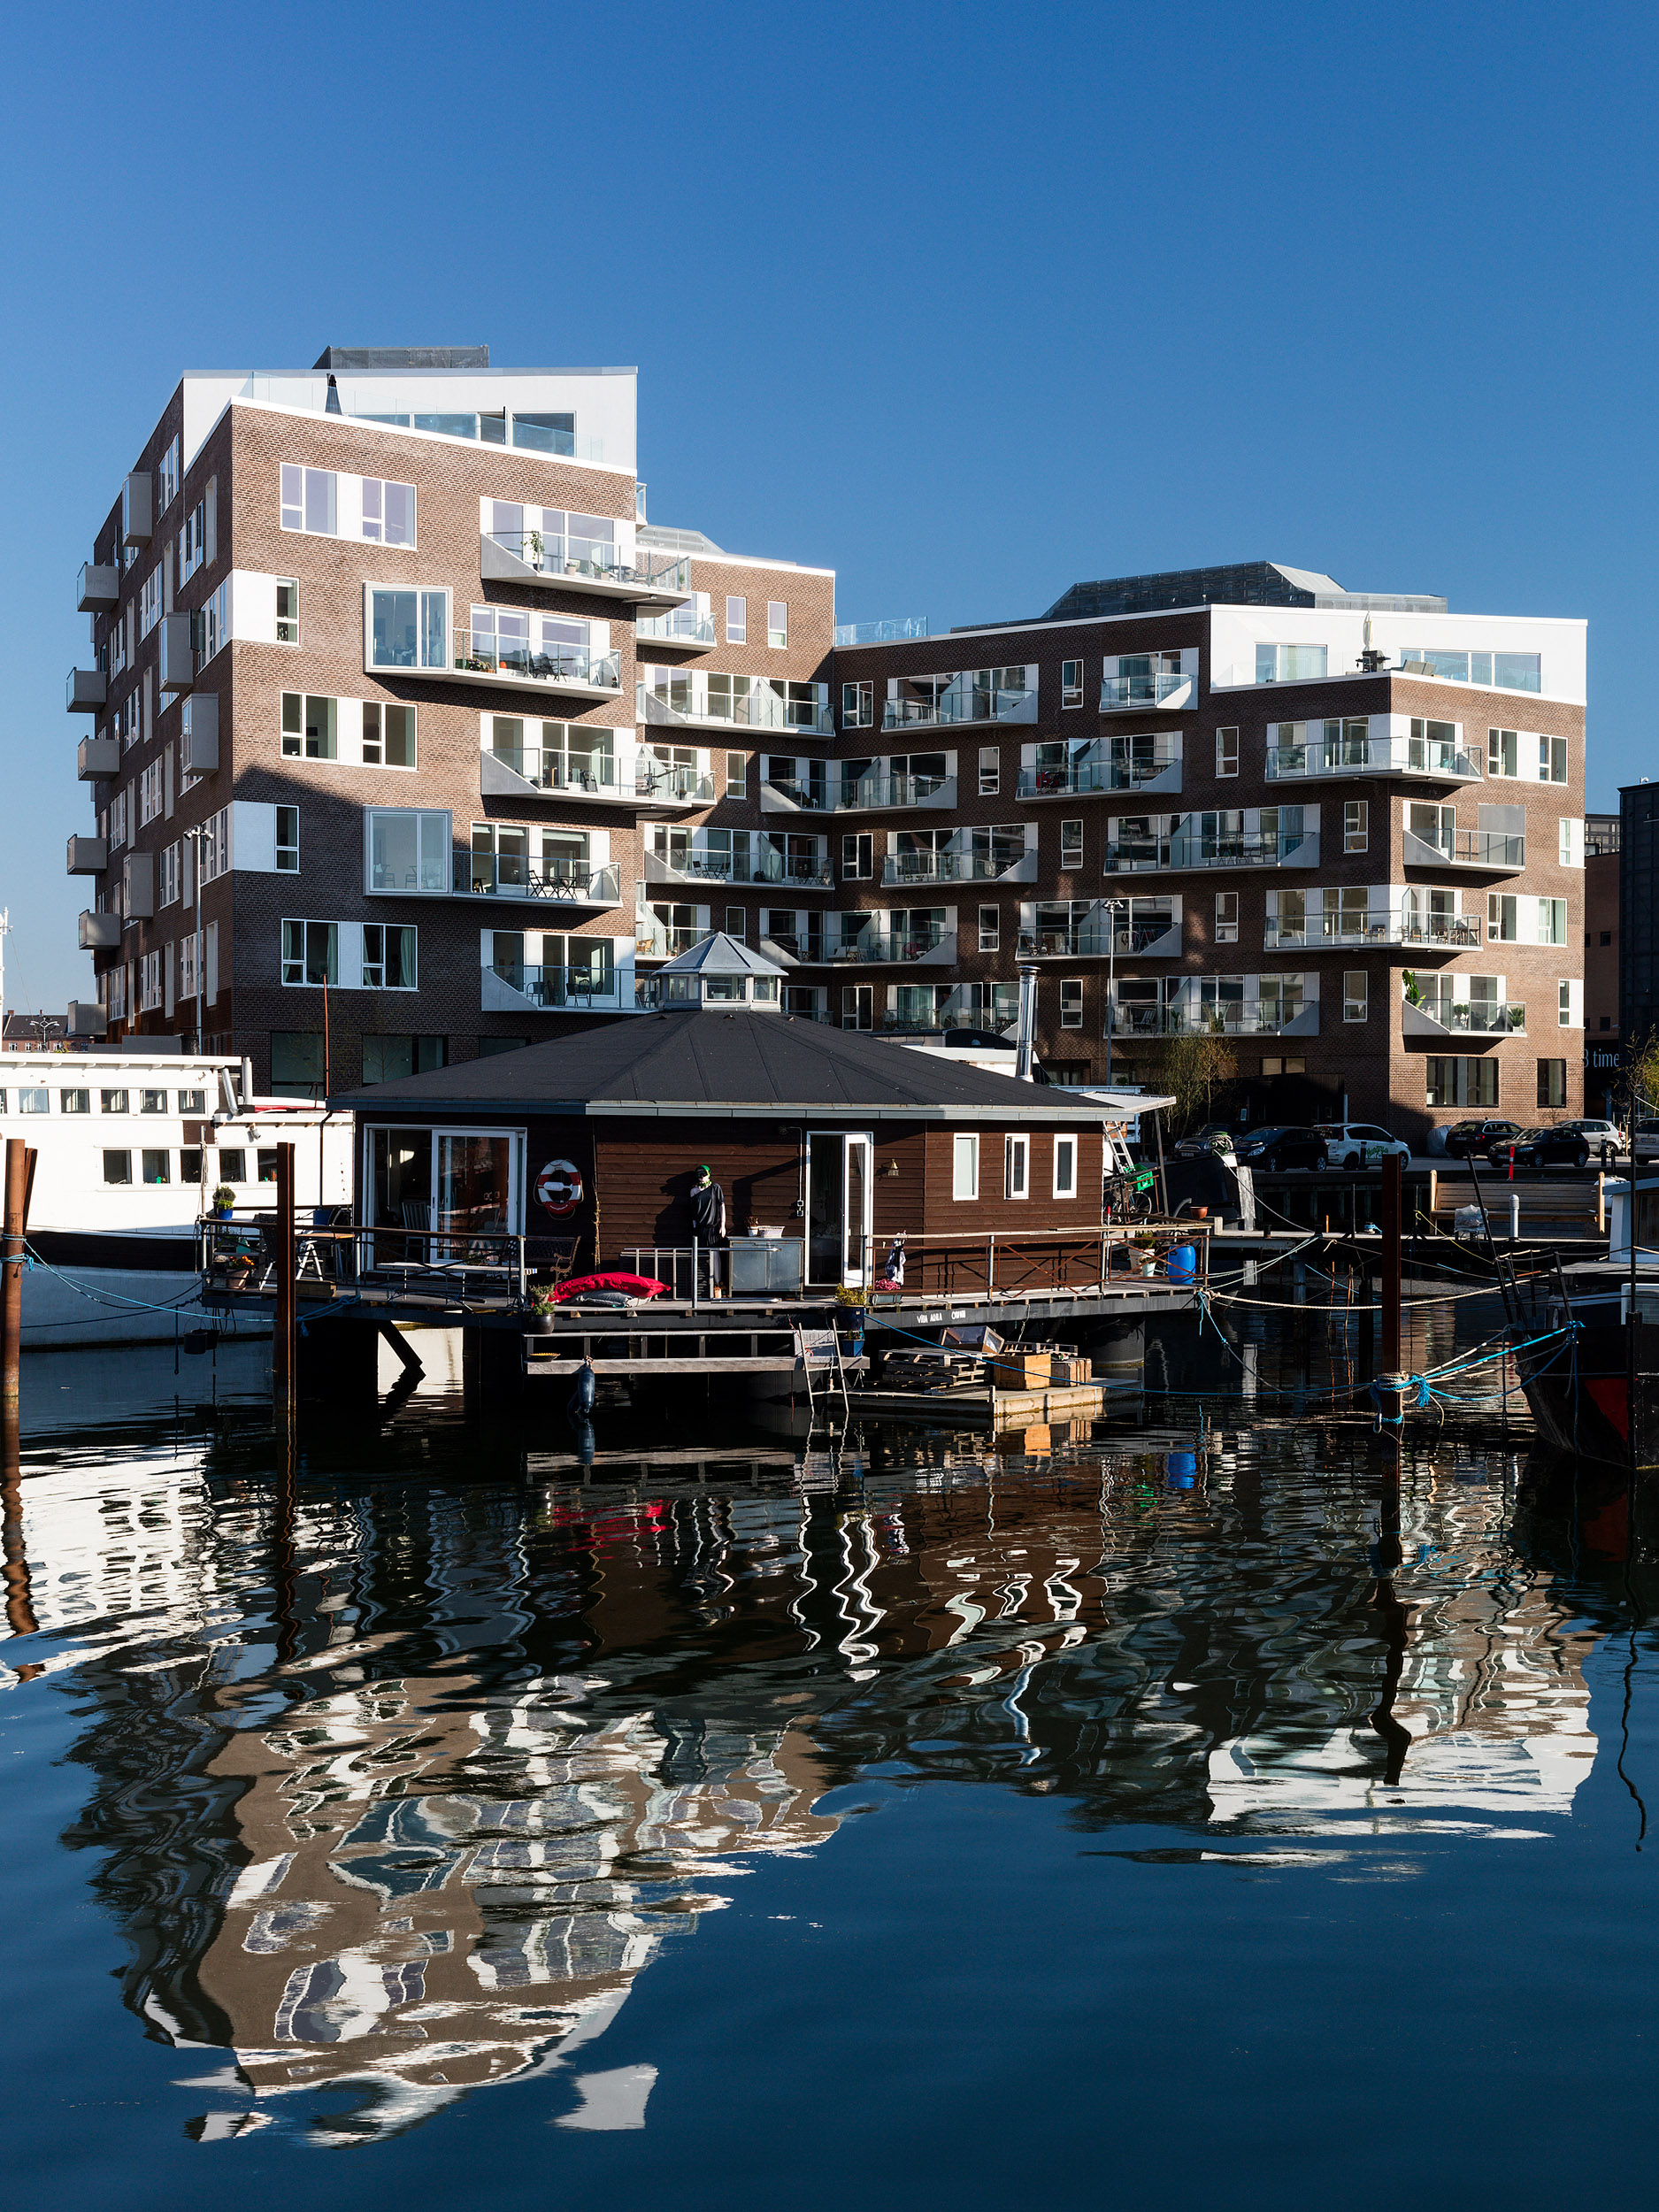 Residential housing, Skibbroen, realised by Holscher Nordberg Architects. Photographed from early morning throughout the day, letting the sun emphasise the various aspects of the buildings character.The special life that characterizes Skibbroen occurs due to users' various activities and the mix of tranquility, activity, transit and practical doings.The uniqueness of the channel and harbor space is maintained. Photographed from early morning throughout the day, letting the sun emphasise the various aspects of the buildings character.